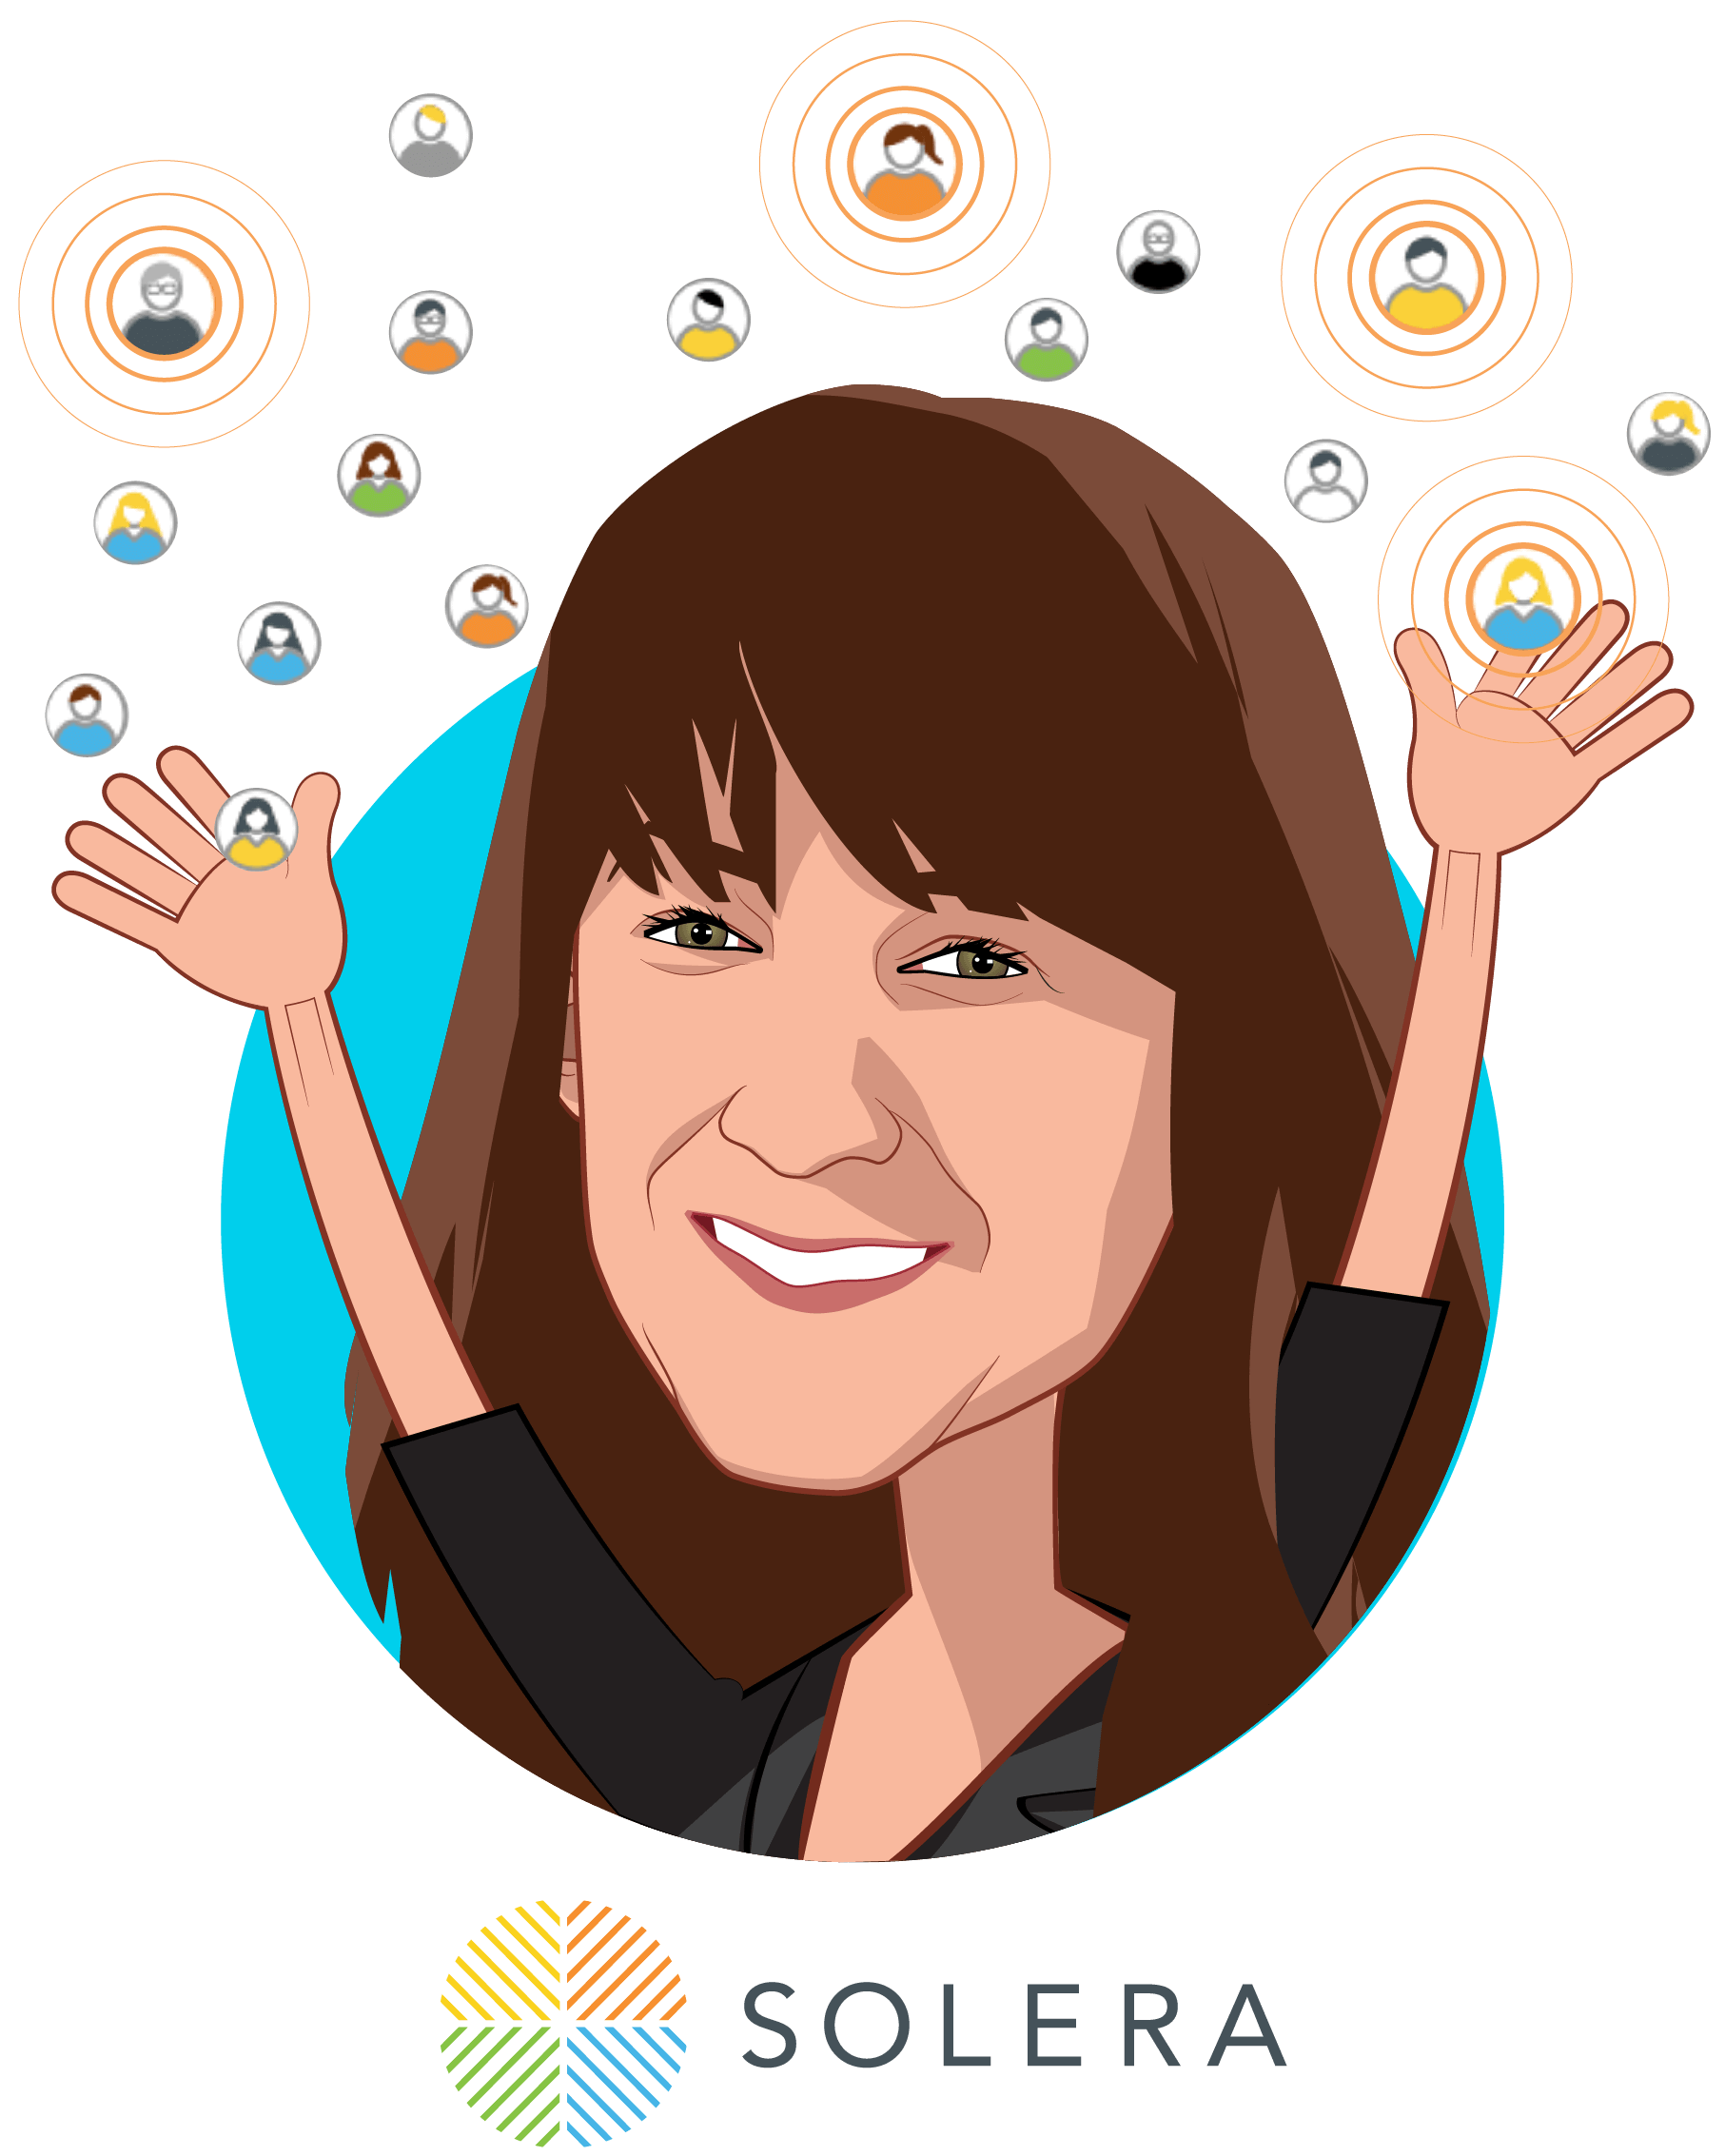 Overlay caricature of Brenda Schmidt, who is speaking at HLTH and is Founder and CEO at Solera Health